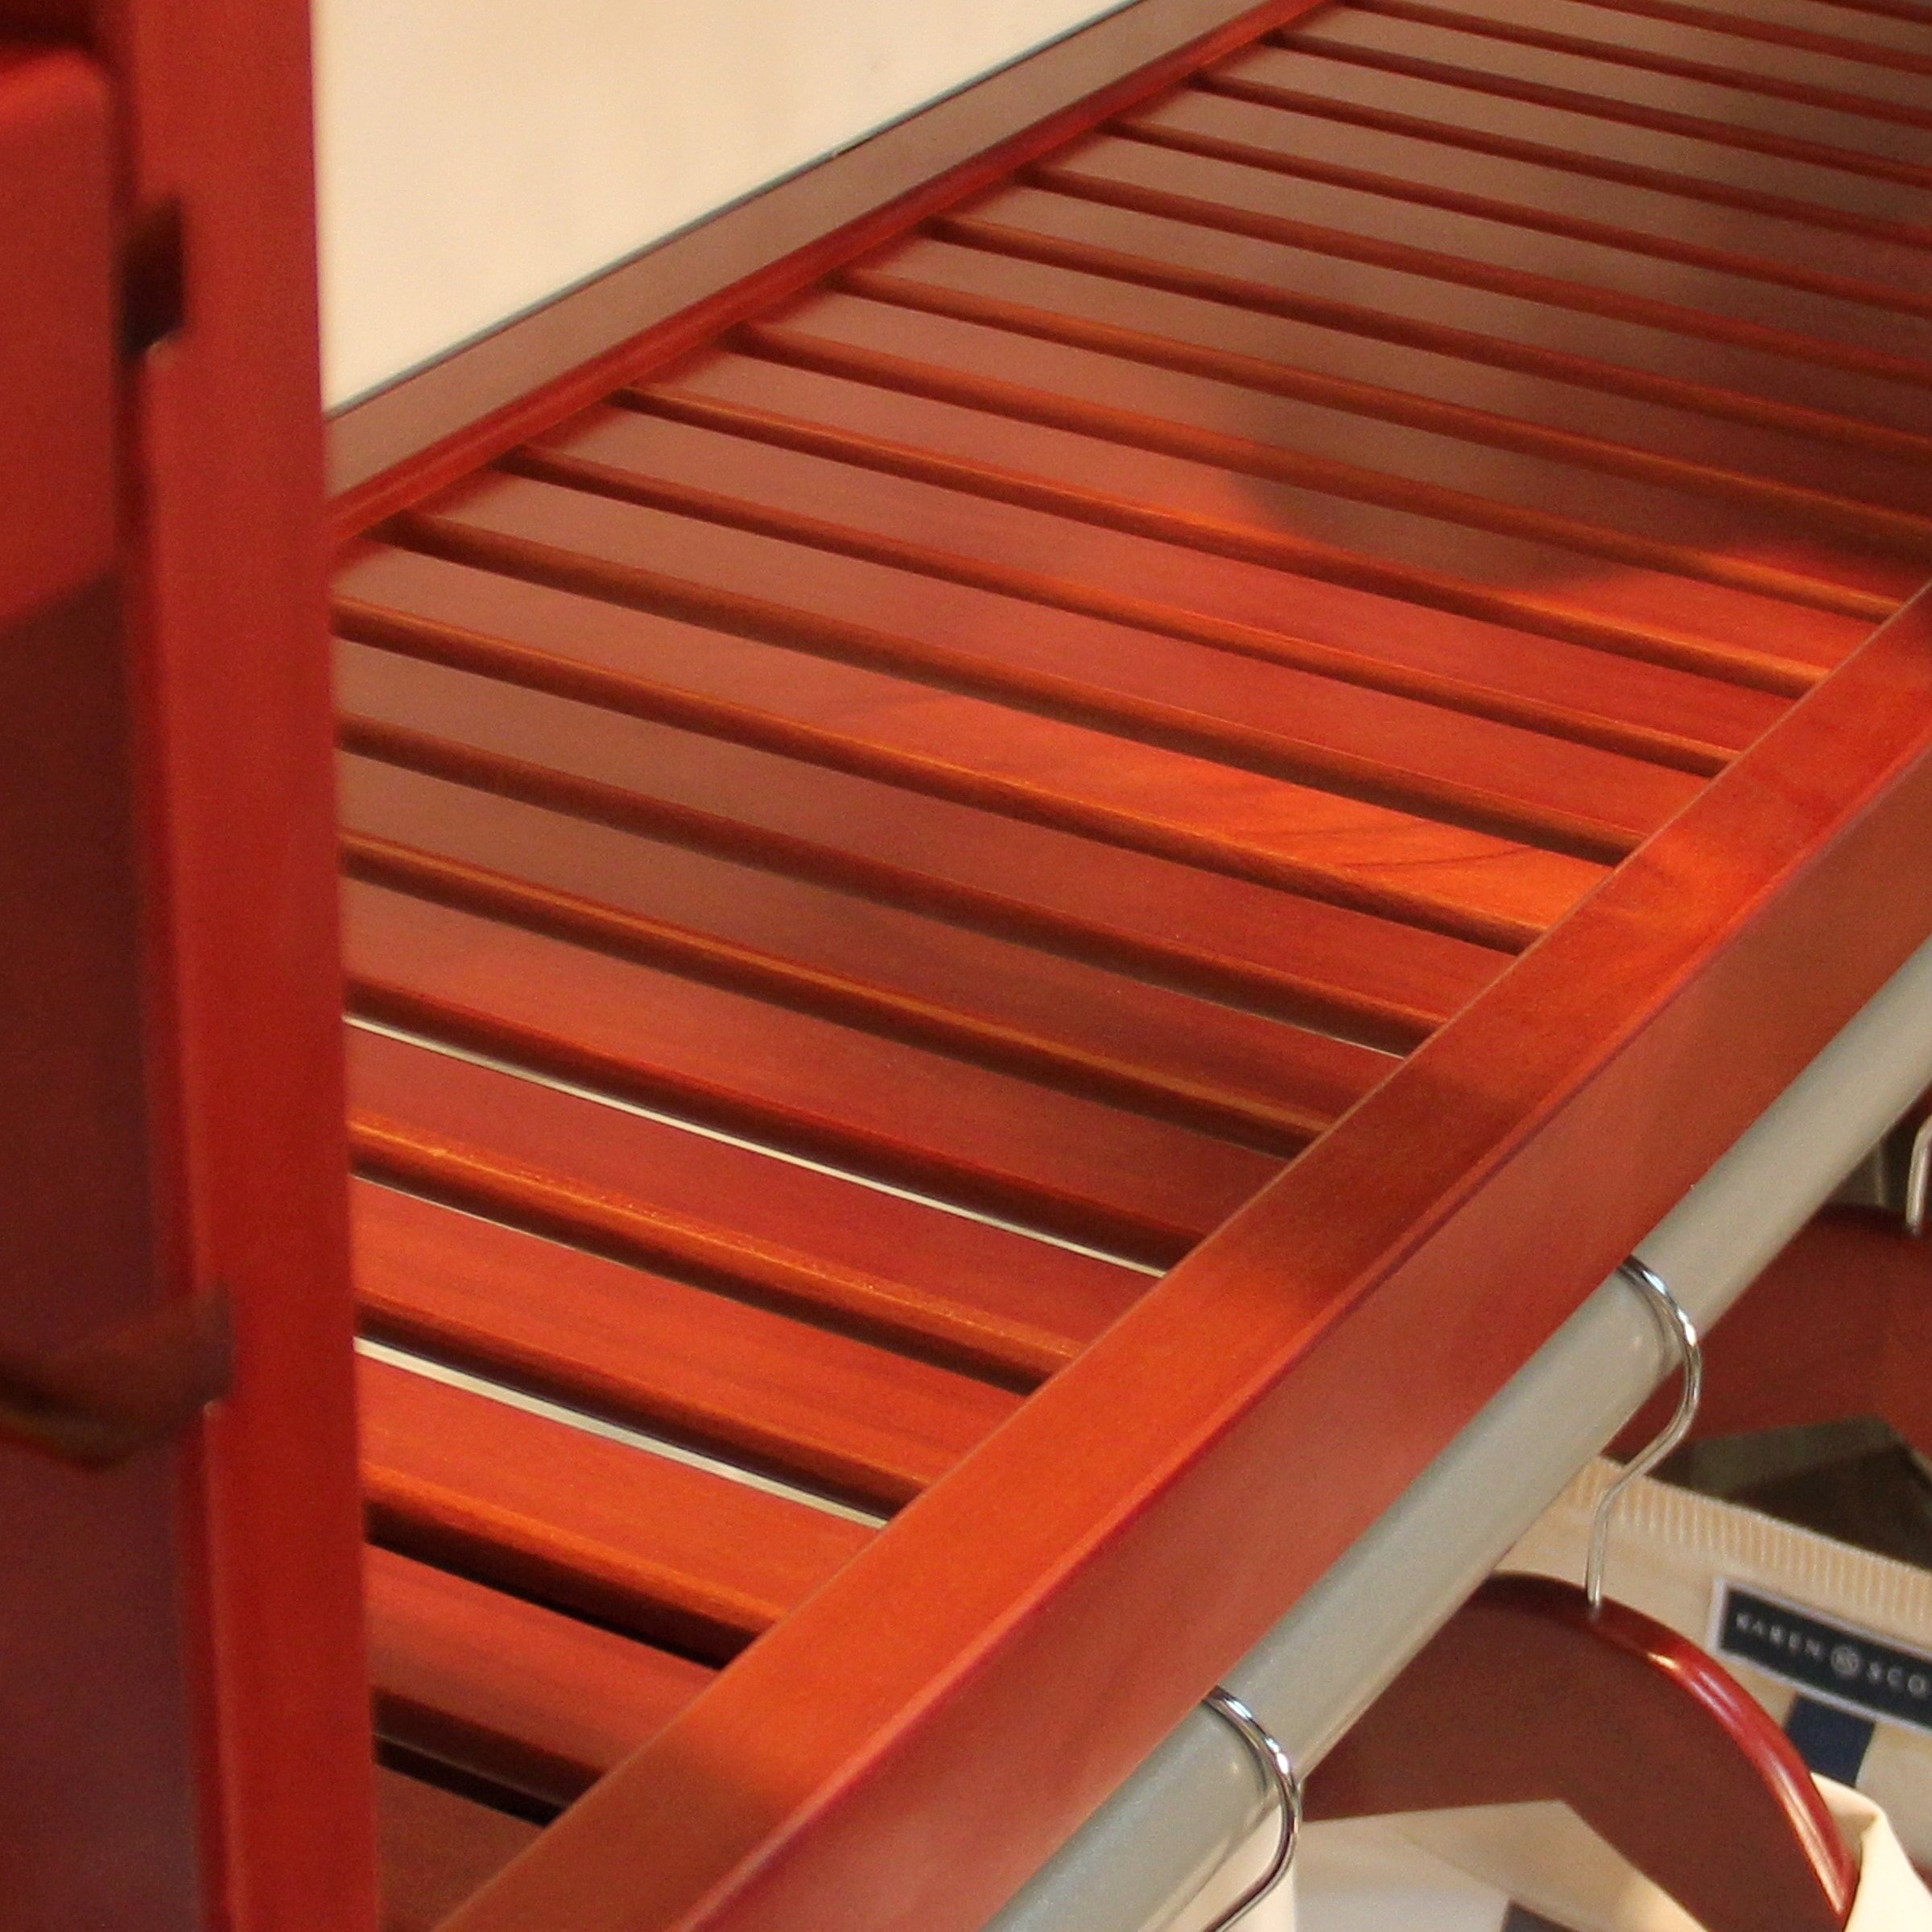 John Louis Home 12in Deep Solid Wood Premier Organizer Red Mahogany Free Shipping Today 5647103